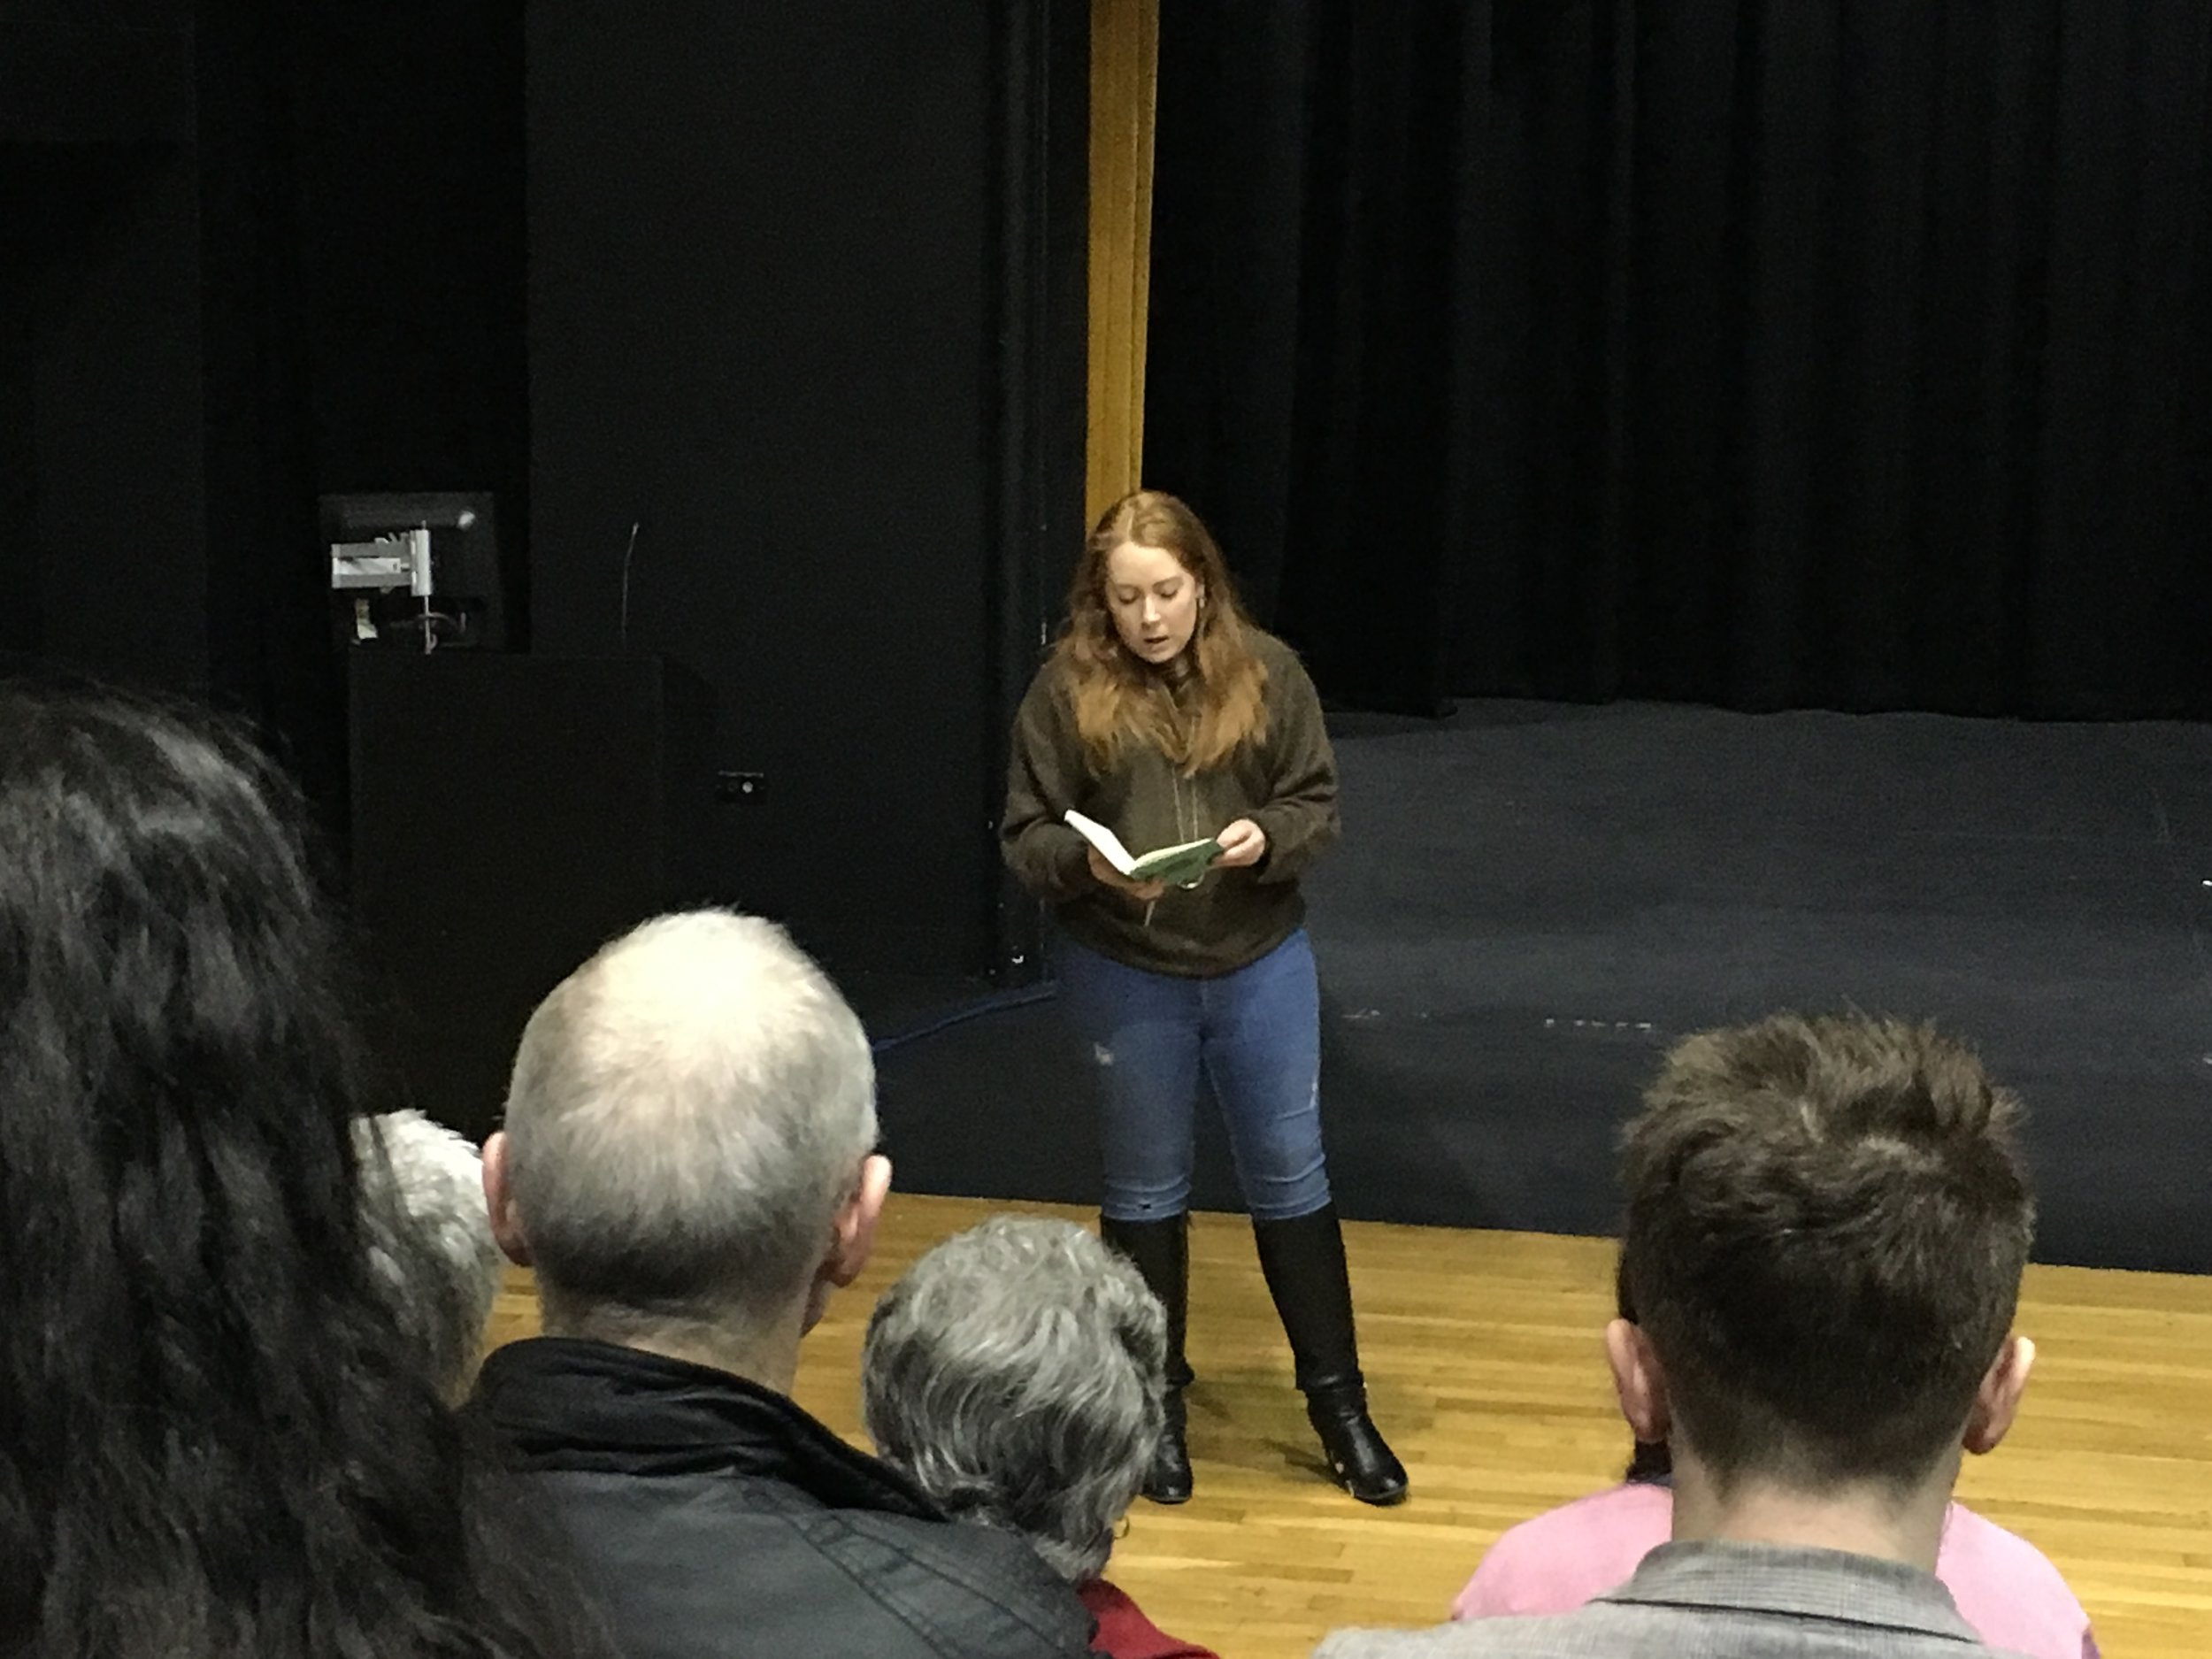 Sophie welcomed our guests and writers to the launch event, held at Loughborough University.